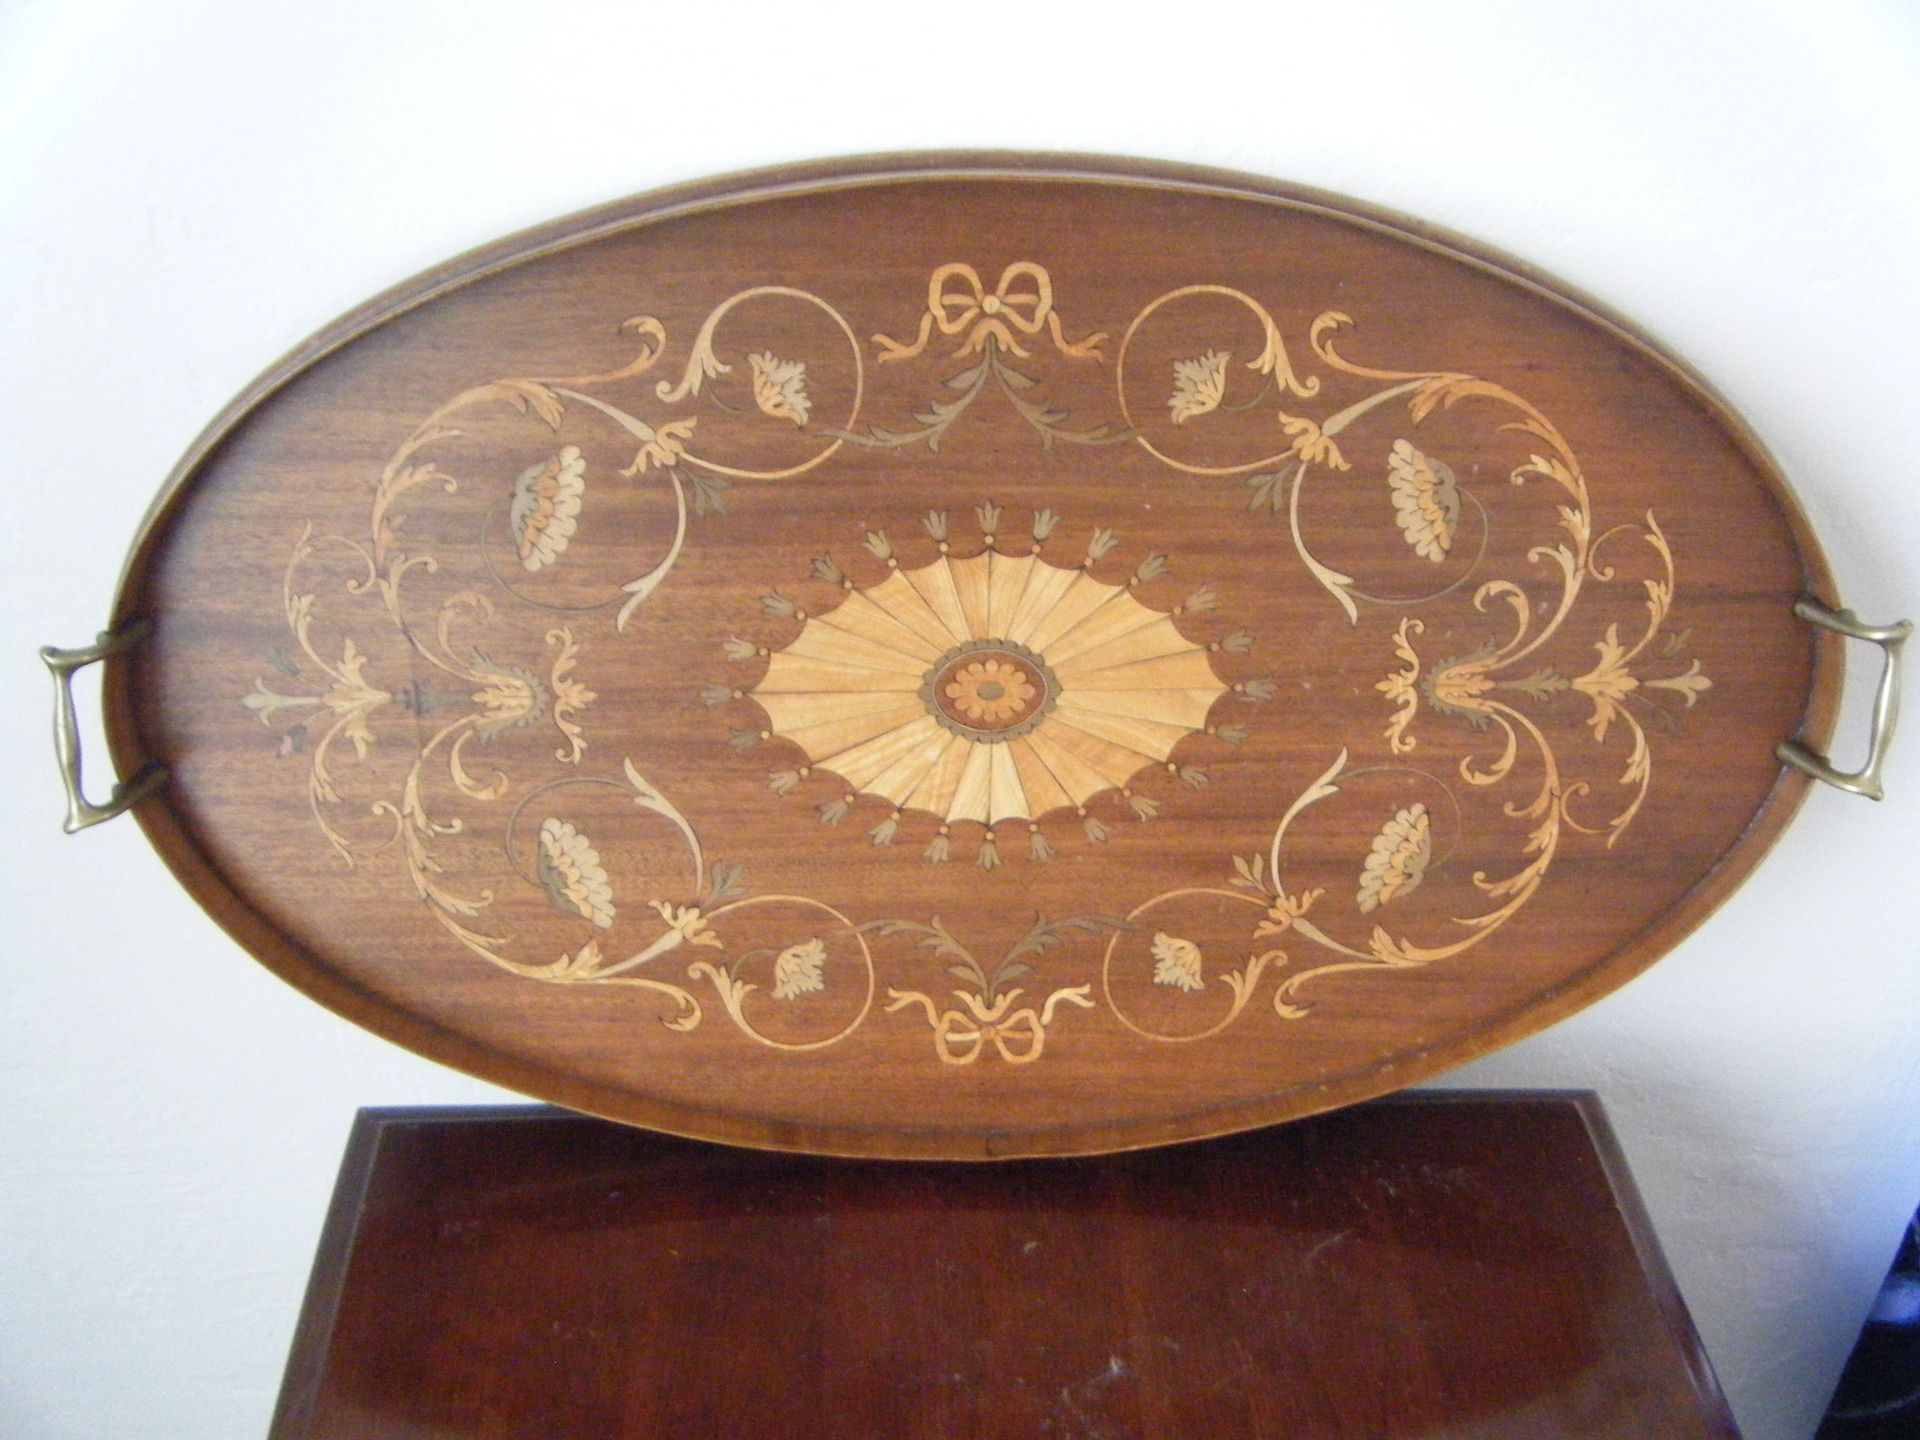 Antique inlaid serving tray - $300